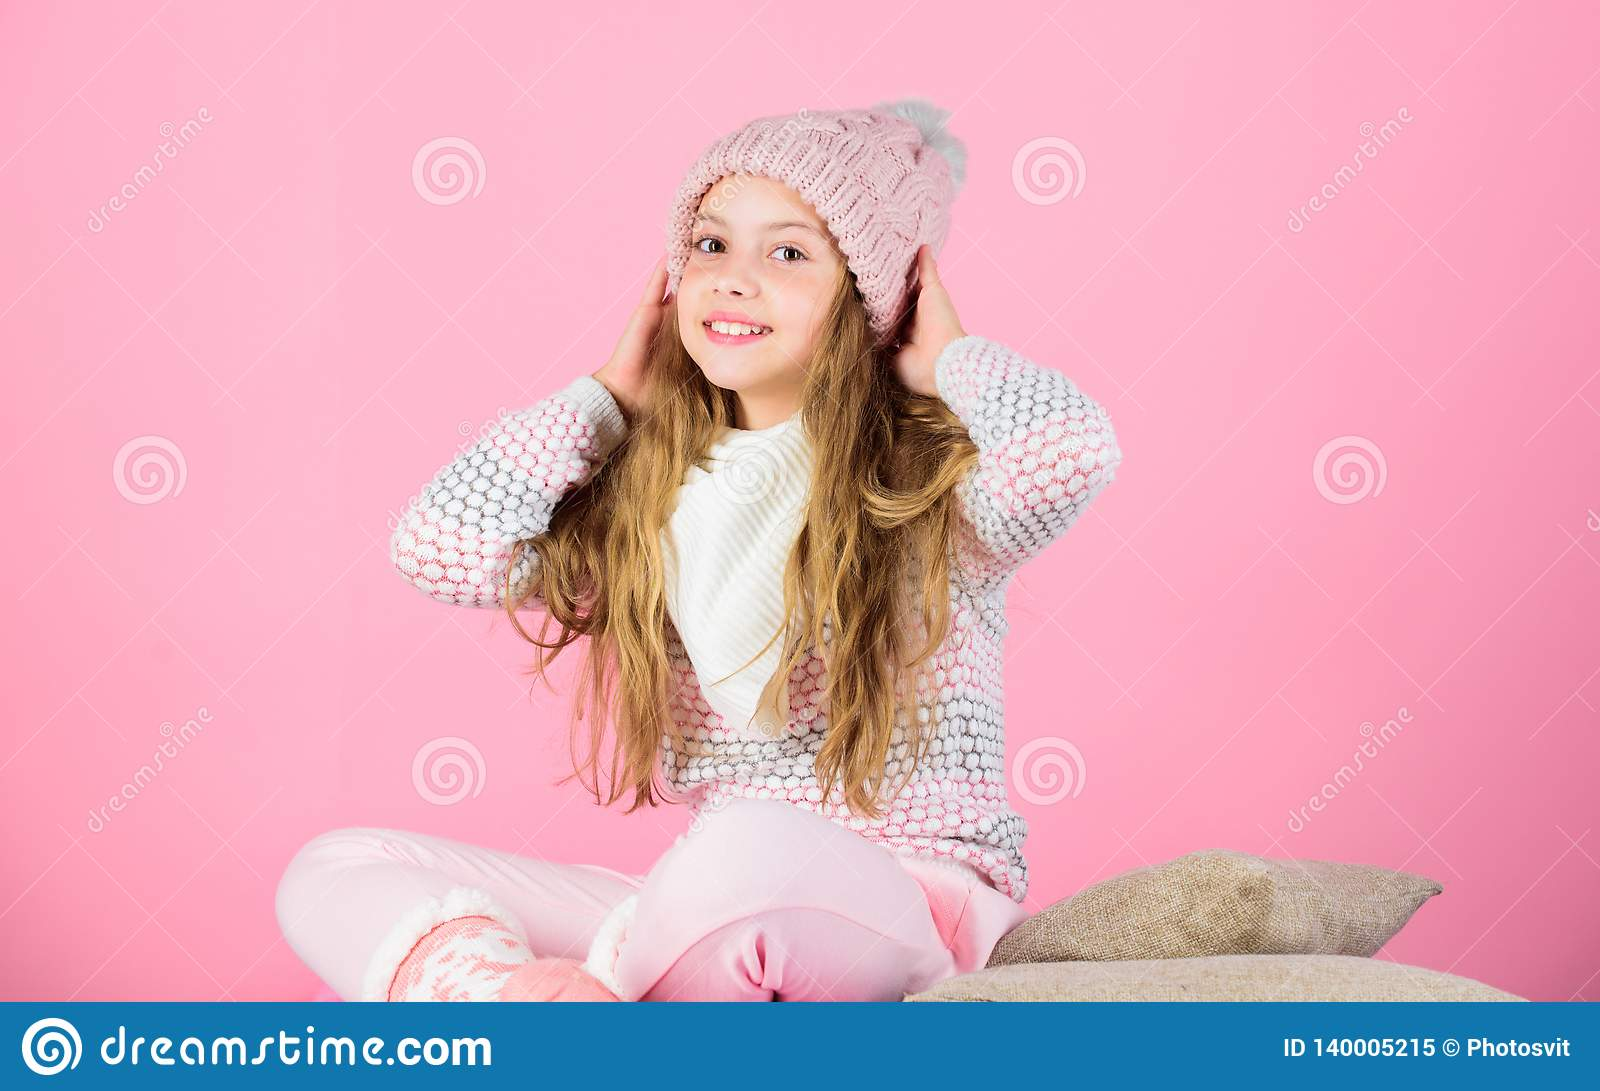 Keep knitwear soft after washing. Soft knitted accessory. Tips for caring for knitted garments. Child long hair warm